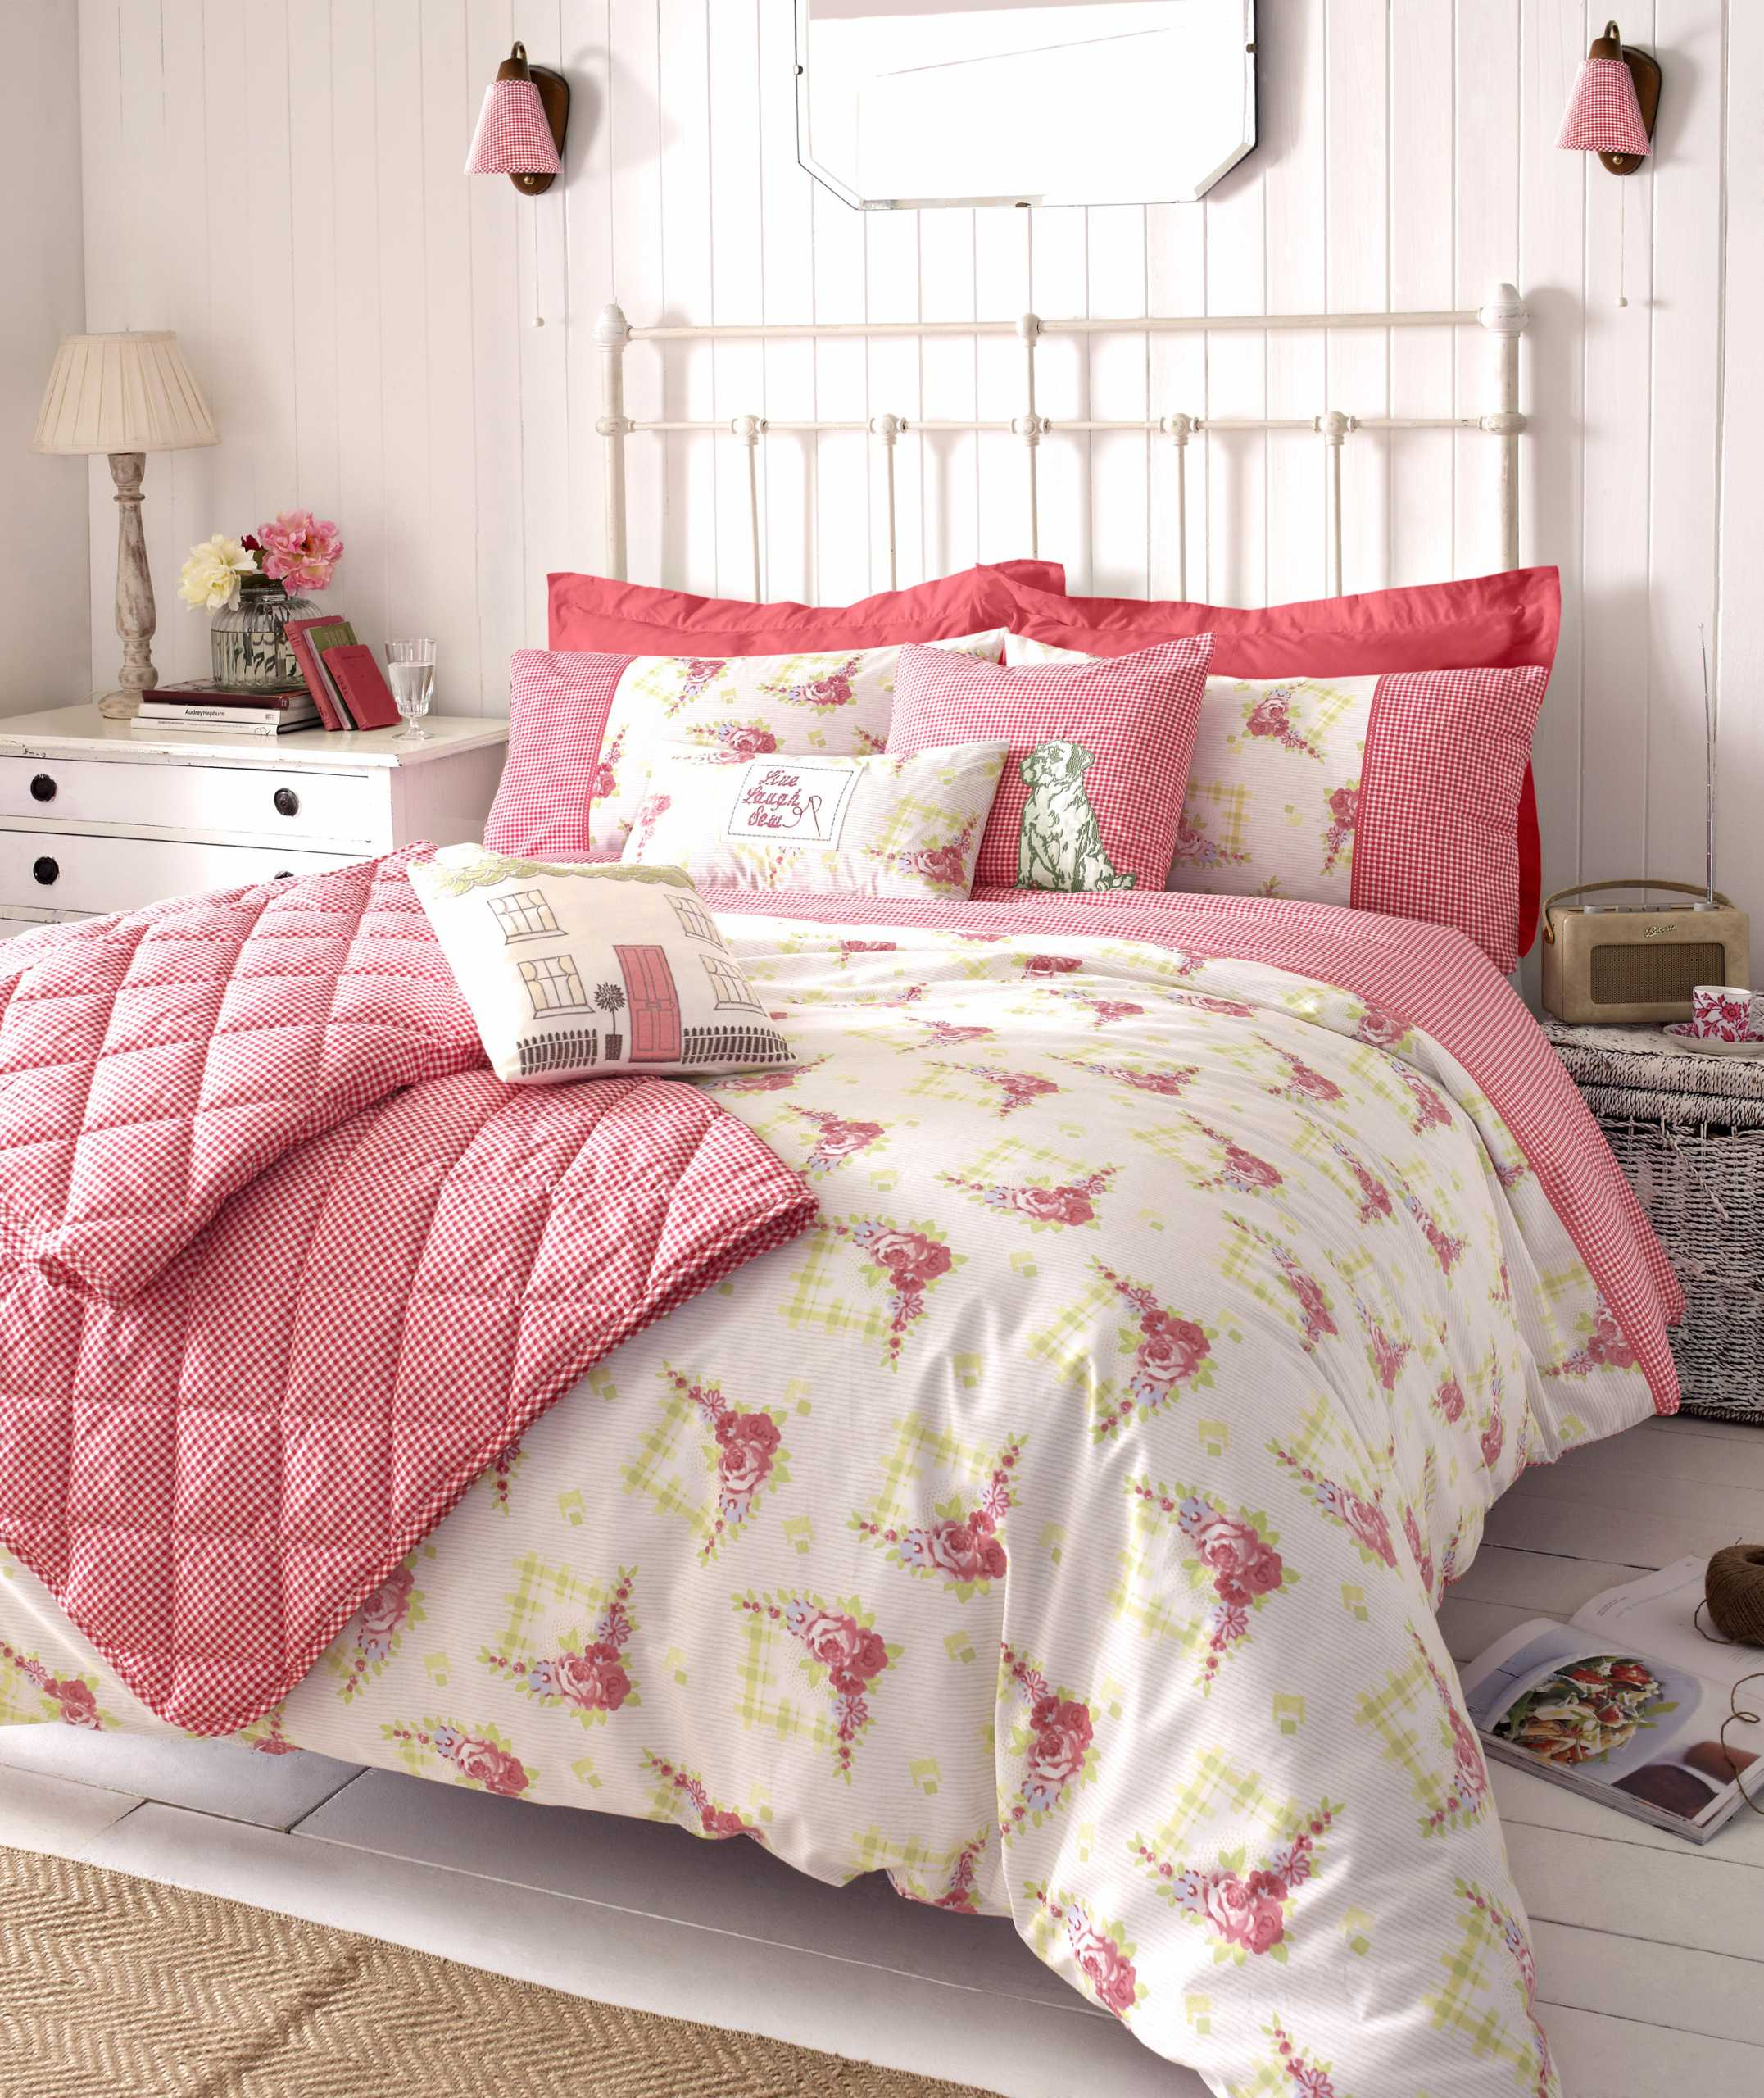 Charming Color Of Best Shabby Chic Bedroom Ideas Finished In Small Size With White Color Of Wooden Walling Unit Panel My Decorative